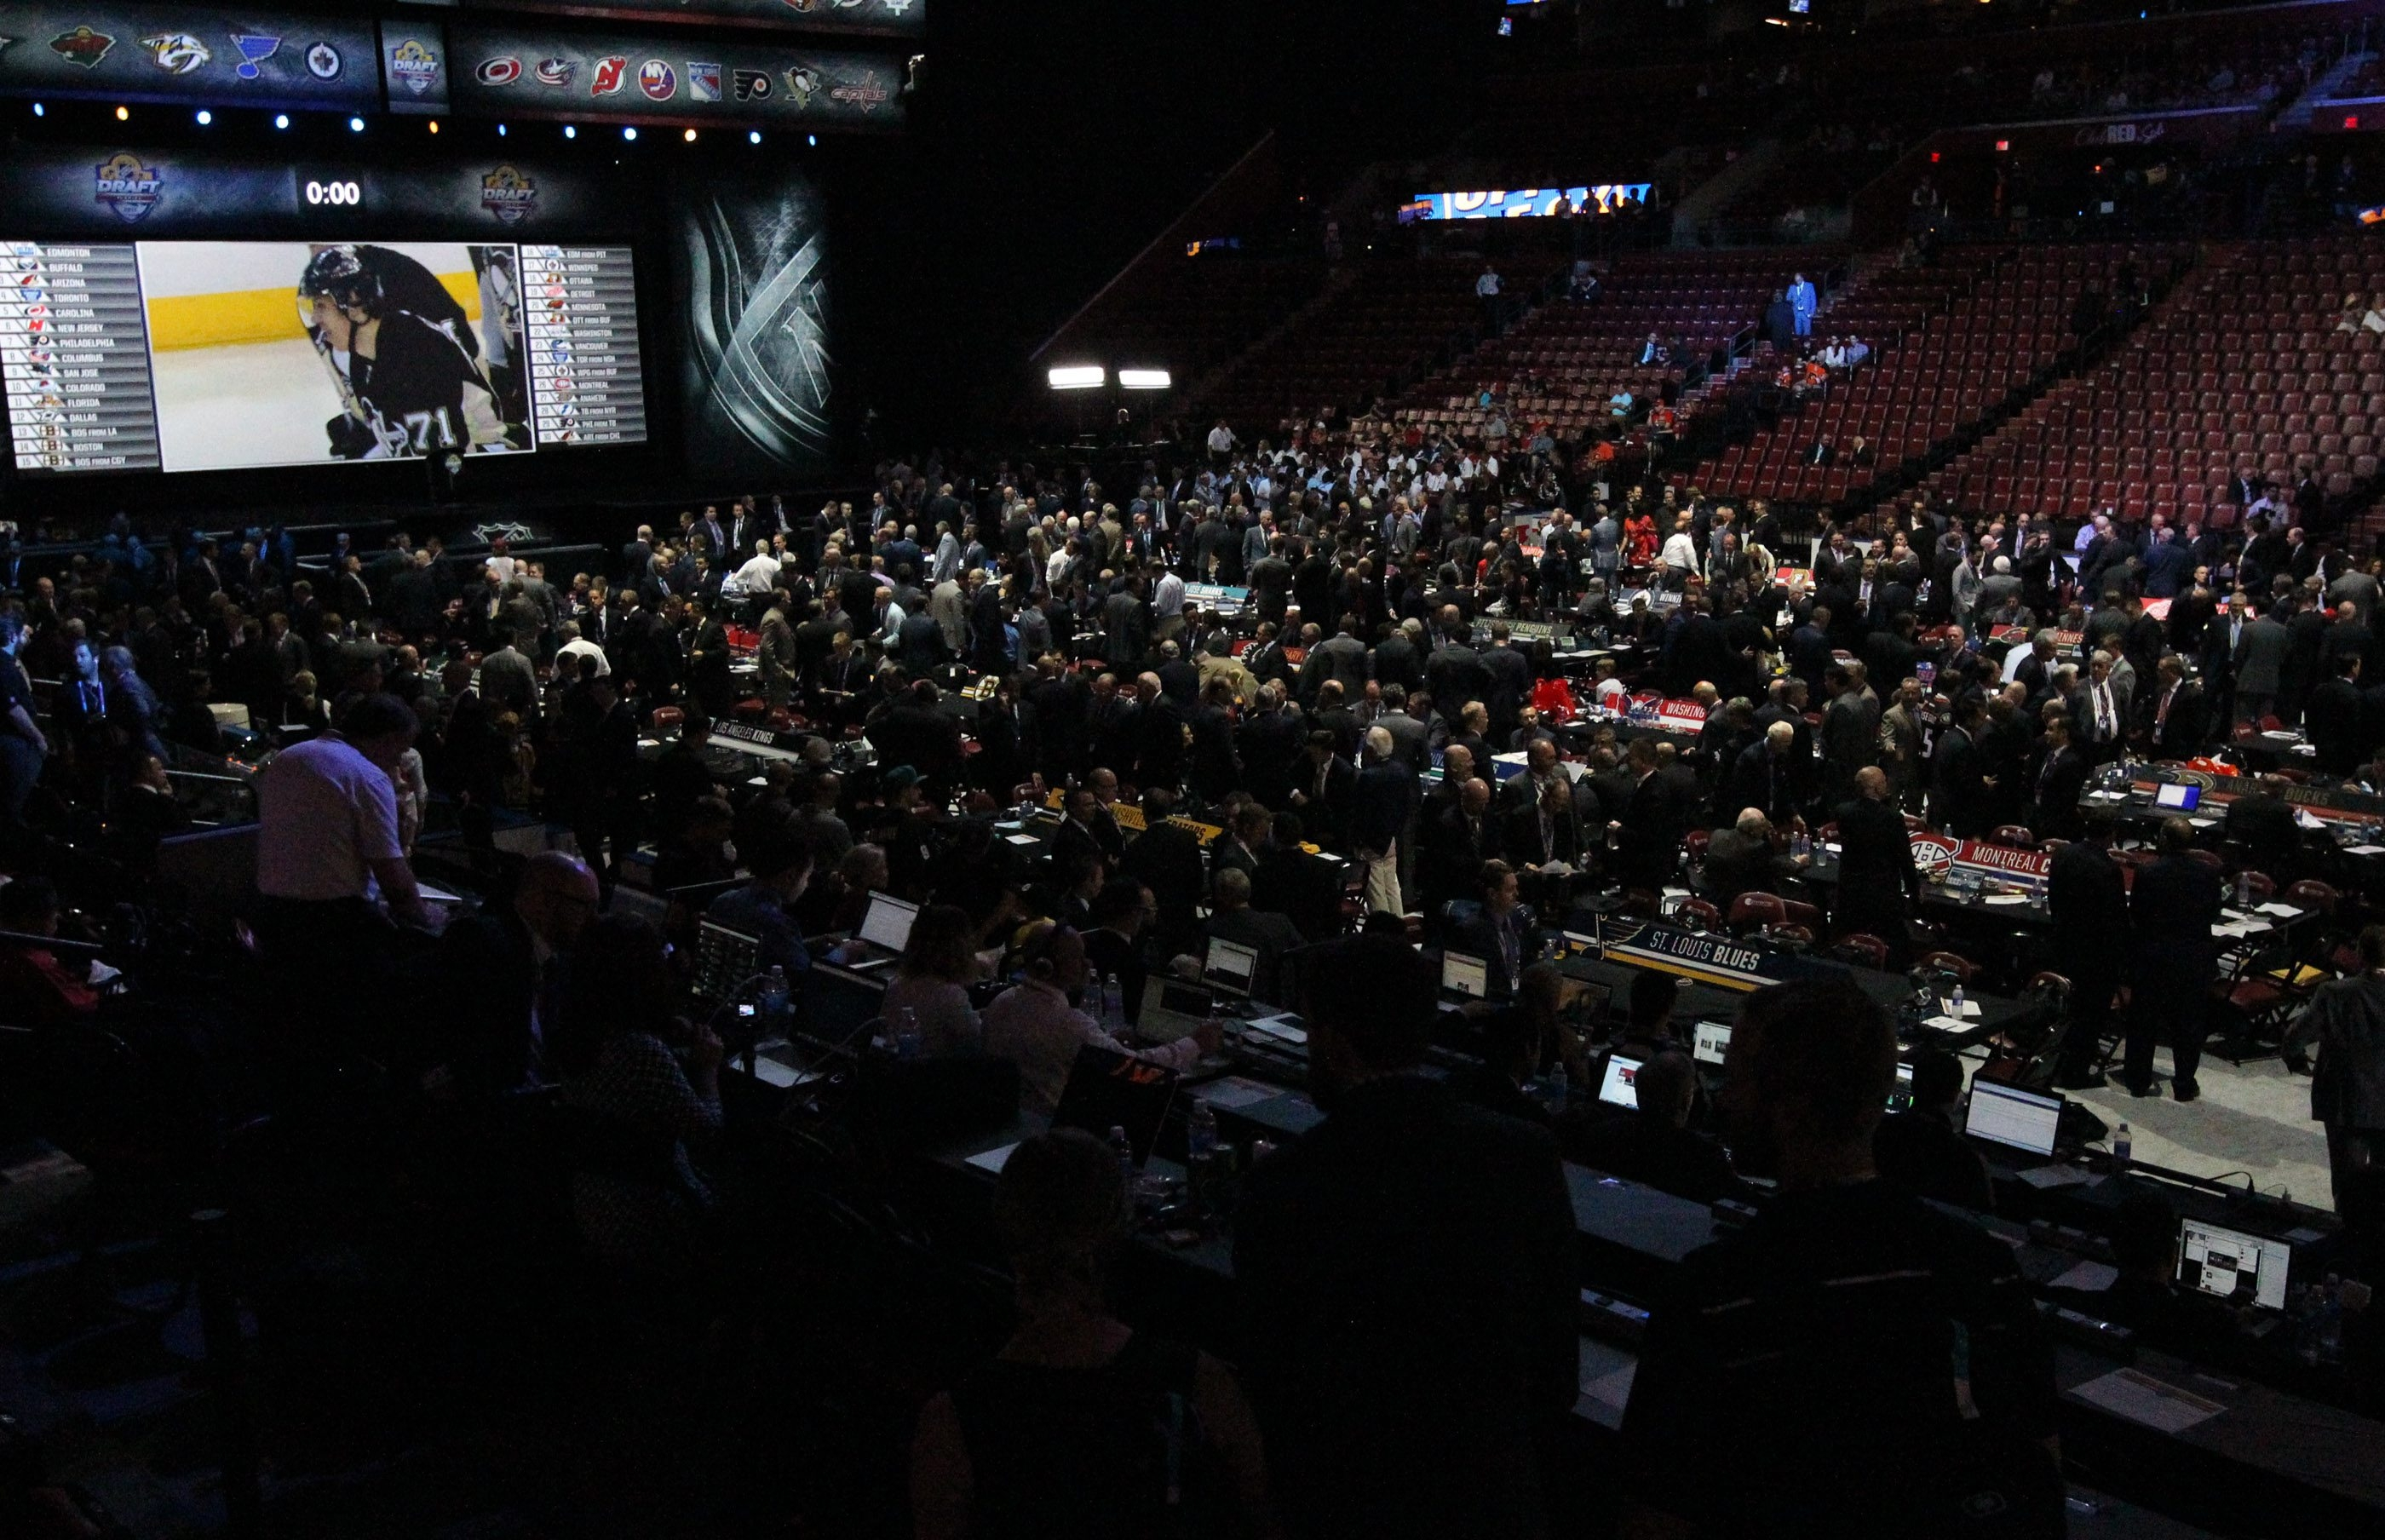 The scene was set for last year's NHL Draft at the BB&T Center in Florida.